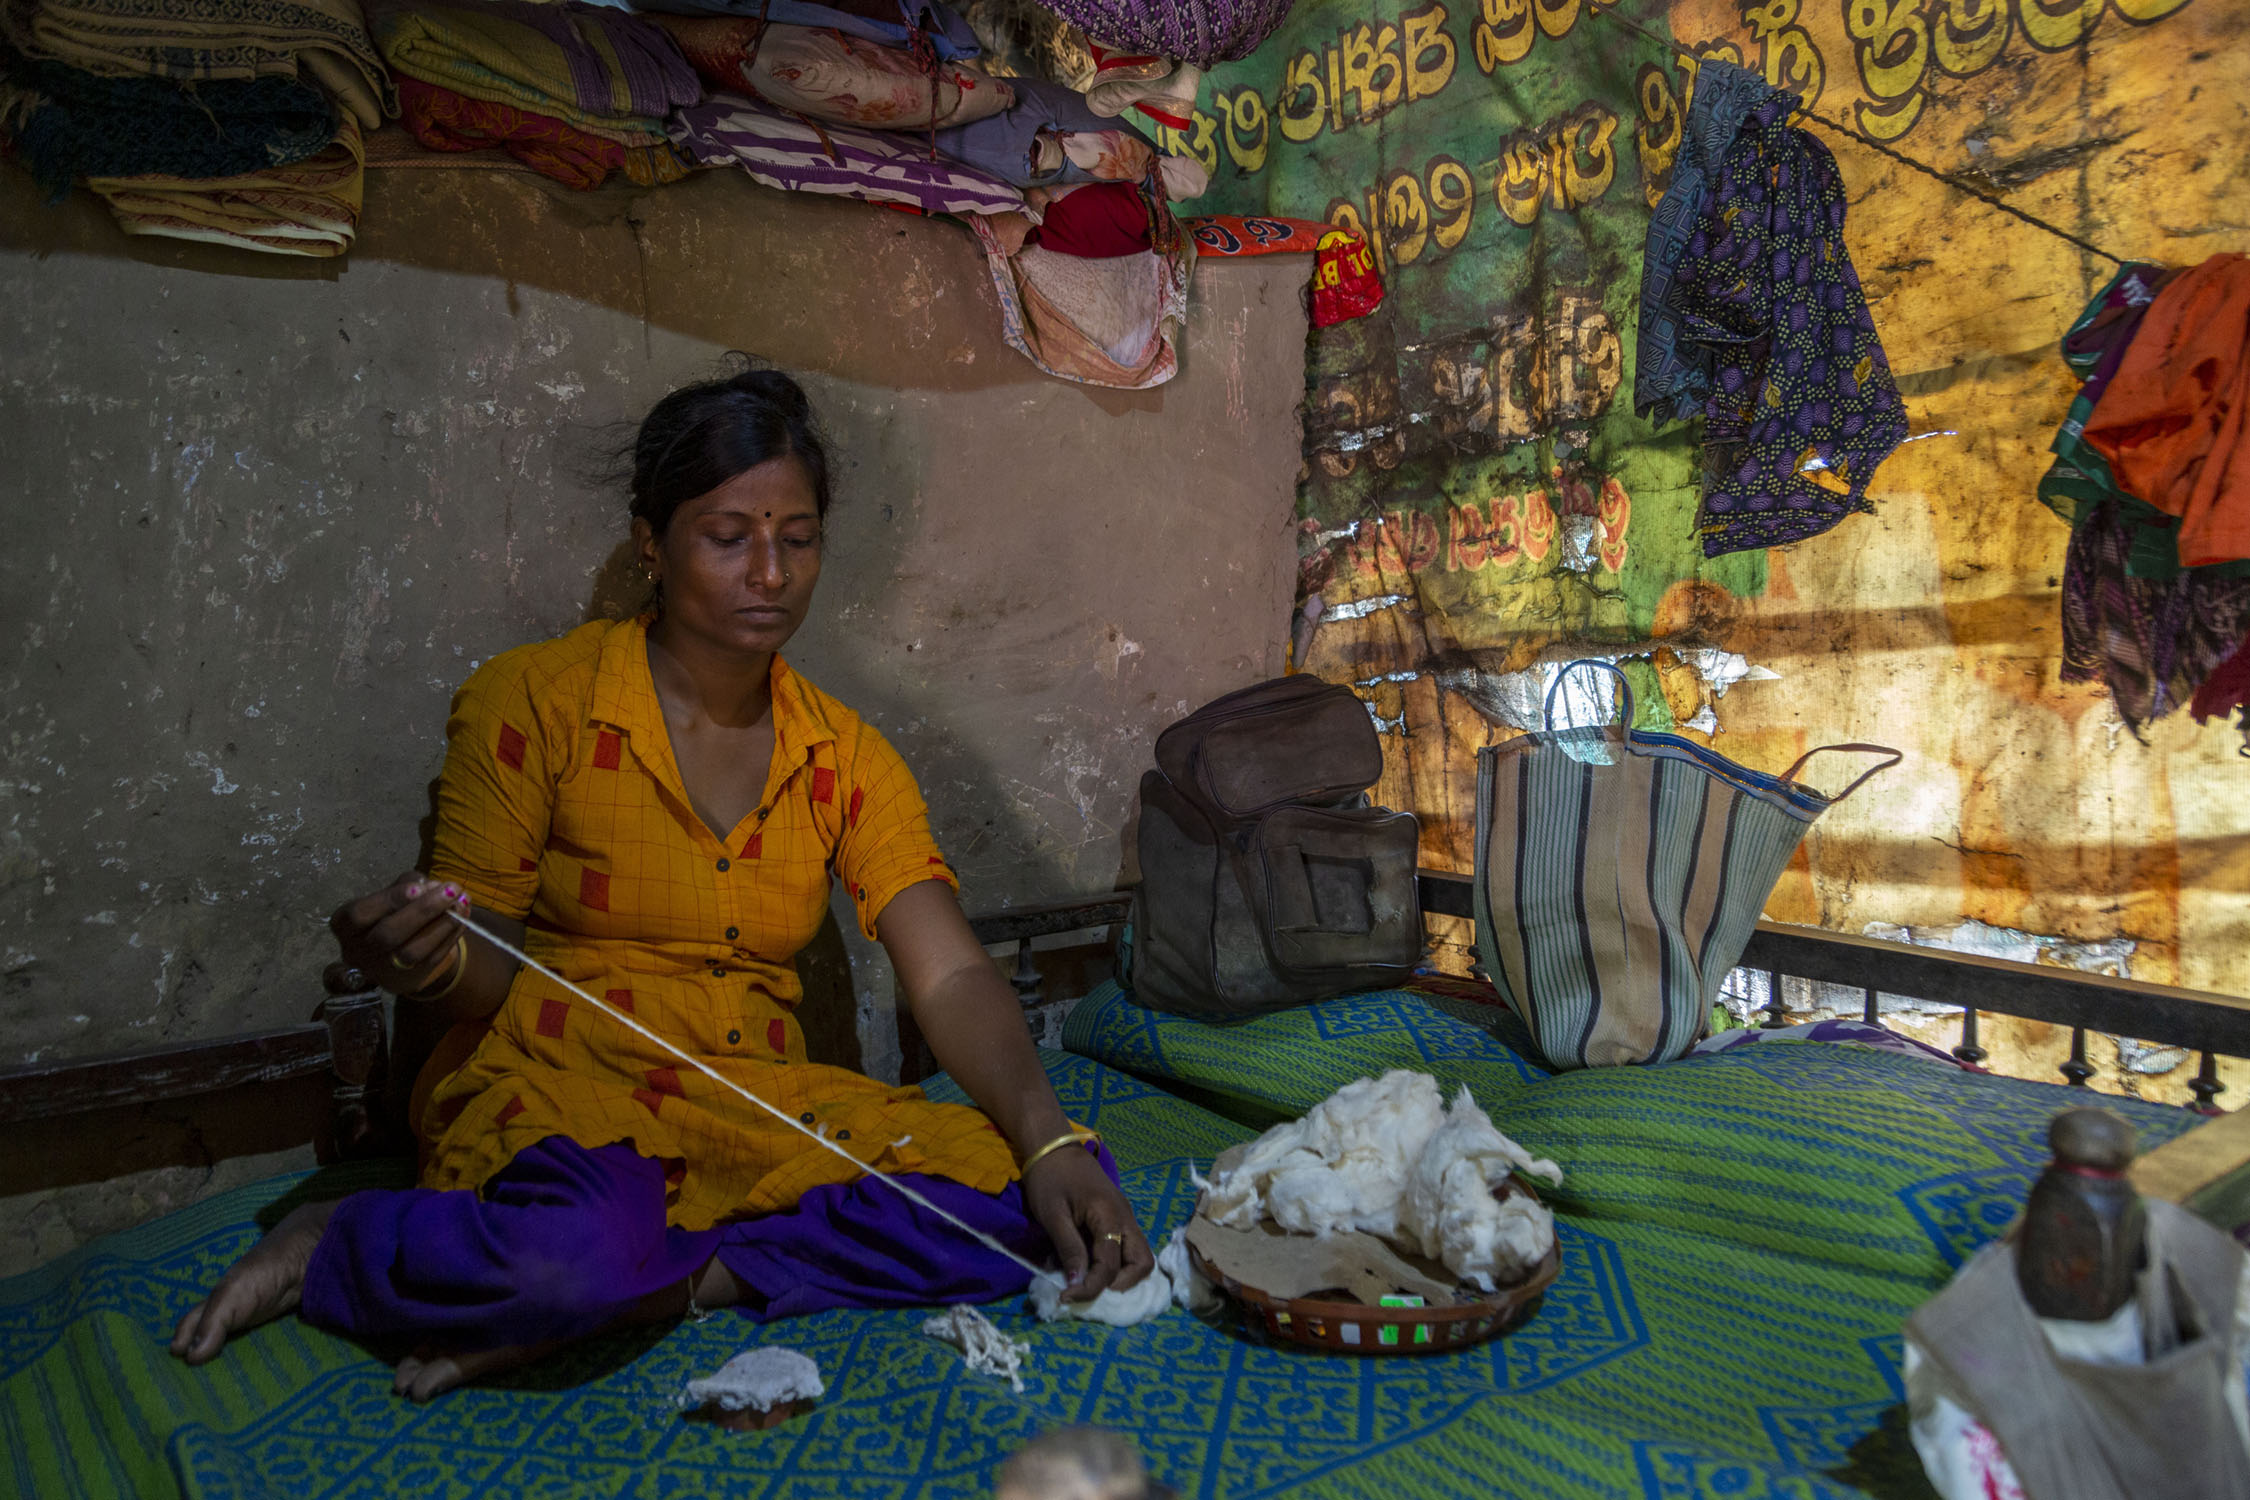 Koushalya sits cross-legged on a cot covered with a sheet in a blue and green pattern. A heap of silk-cotton lies on a circular tray next to her. She holds a bunch of cotton in her left hand and with her right hand she is drawing out a thread.